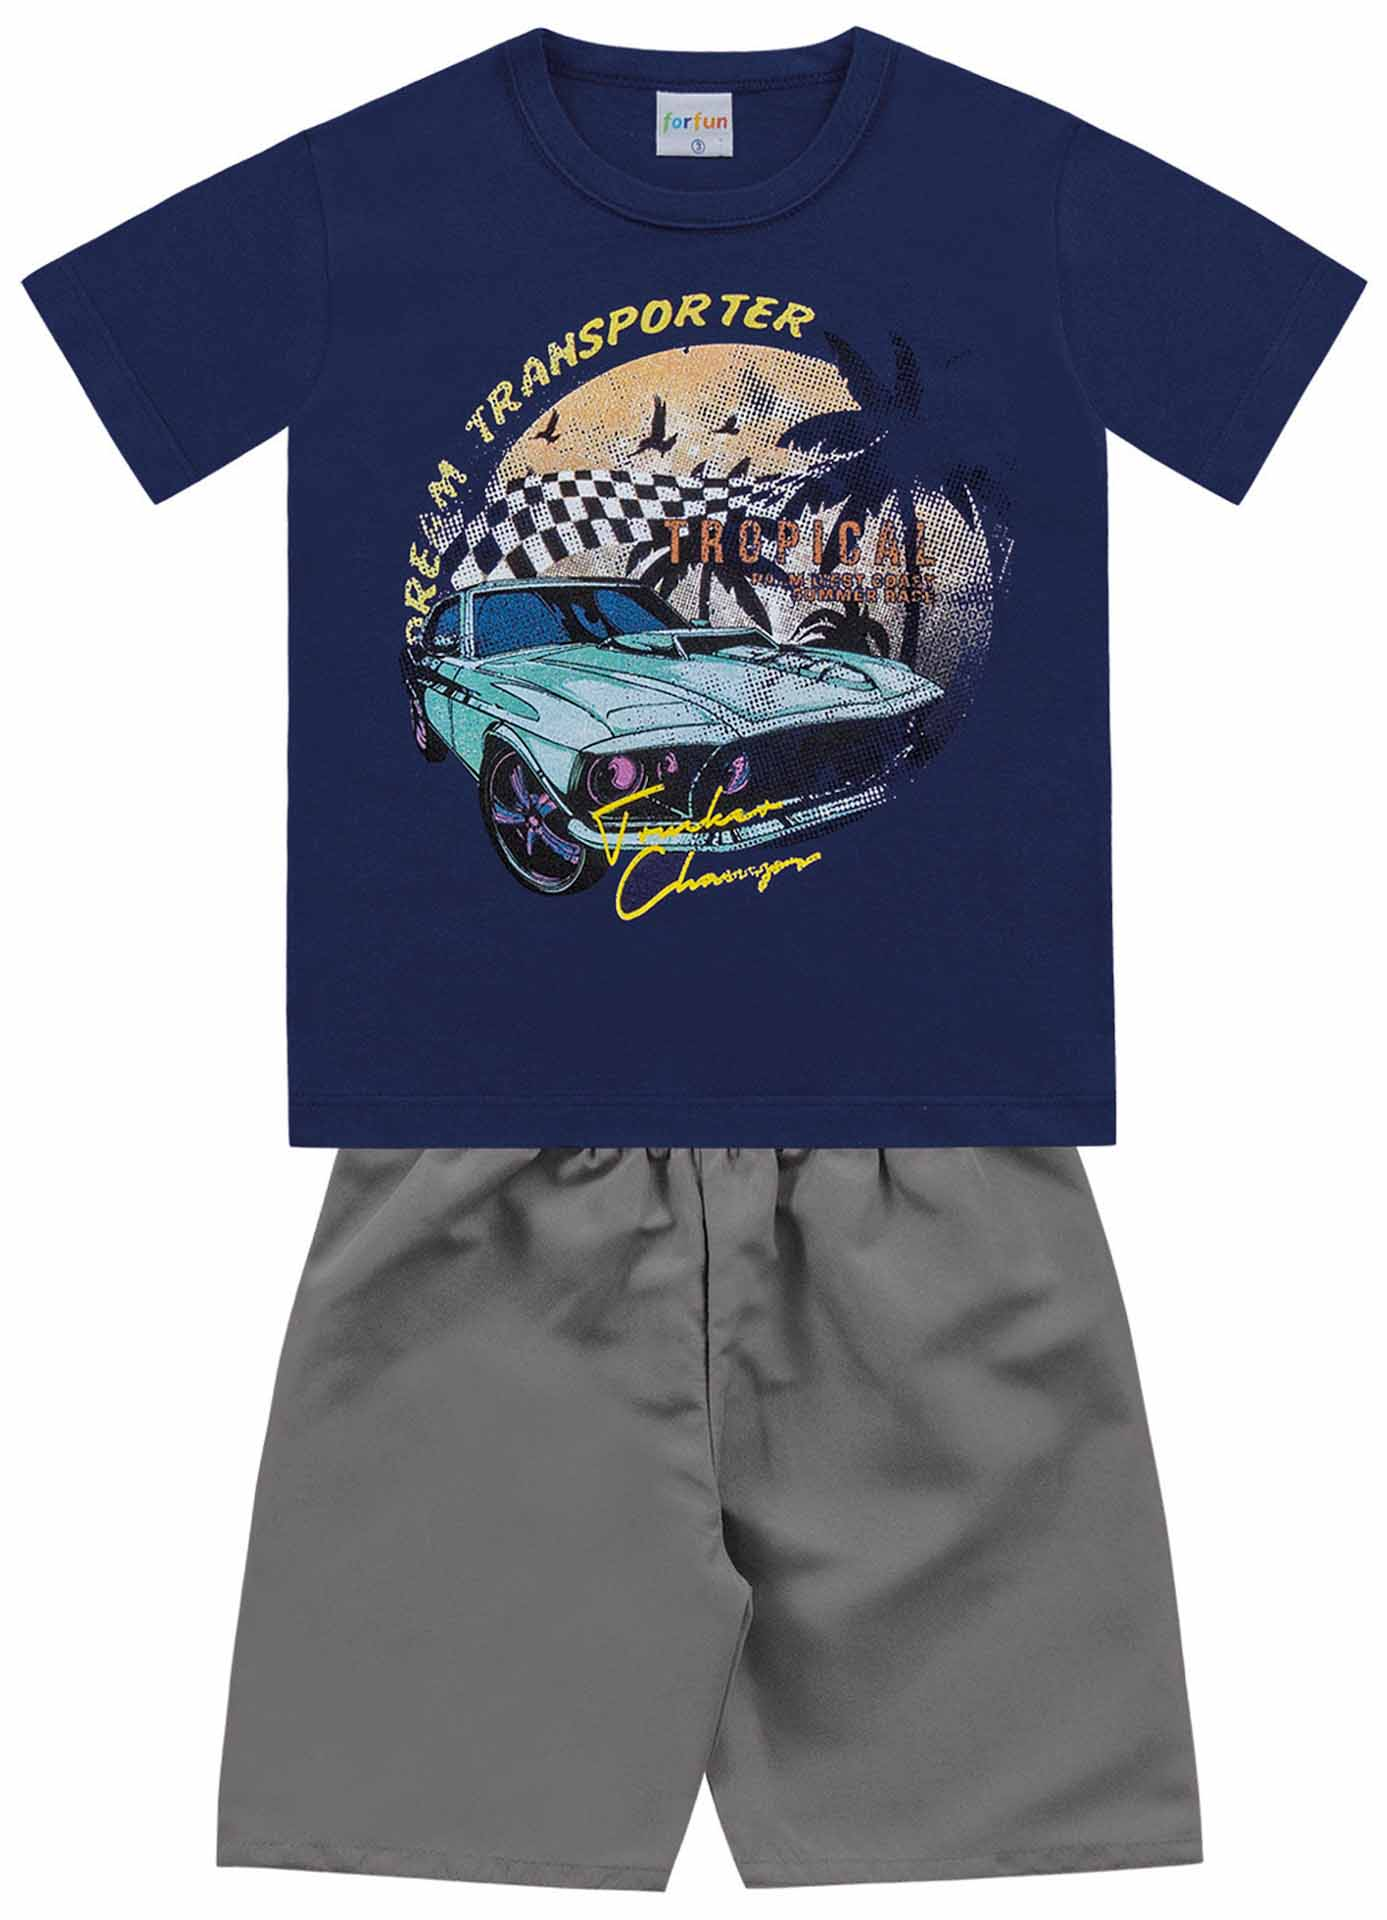 CONJUNTO CAMISETA/BERMUDA DREAM TRANSPORTER